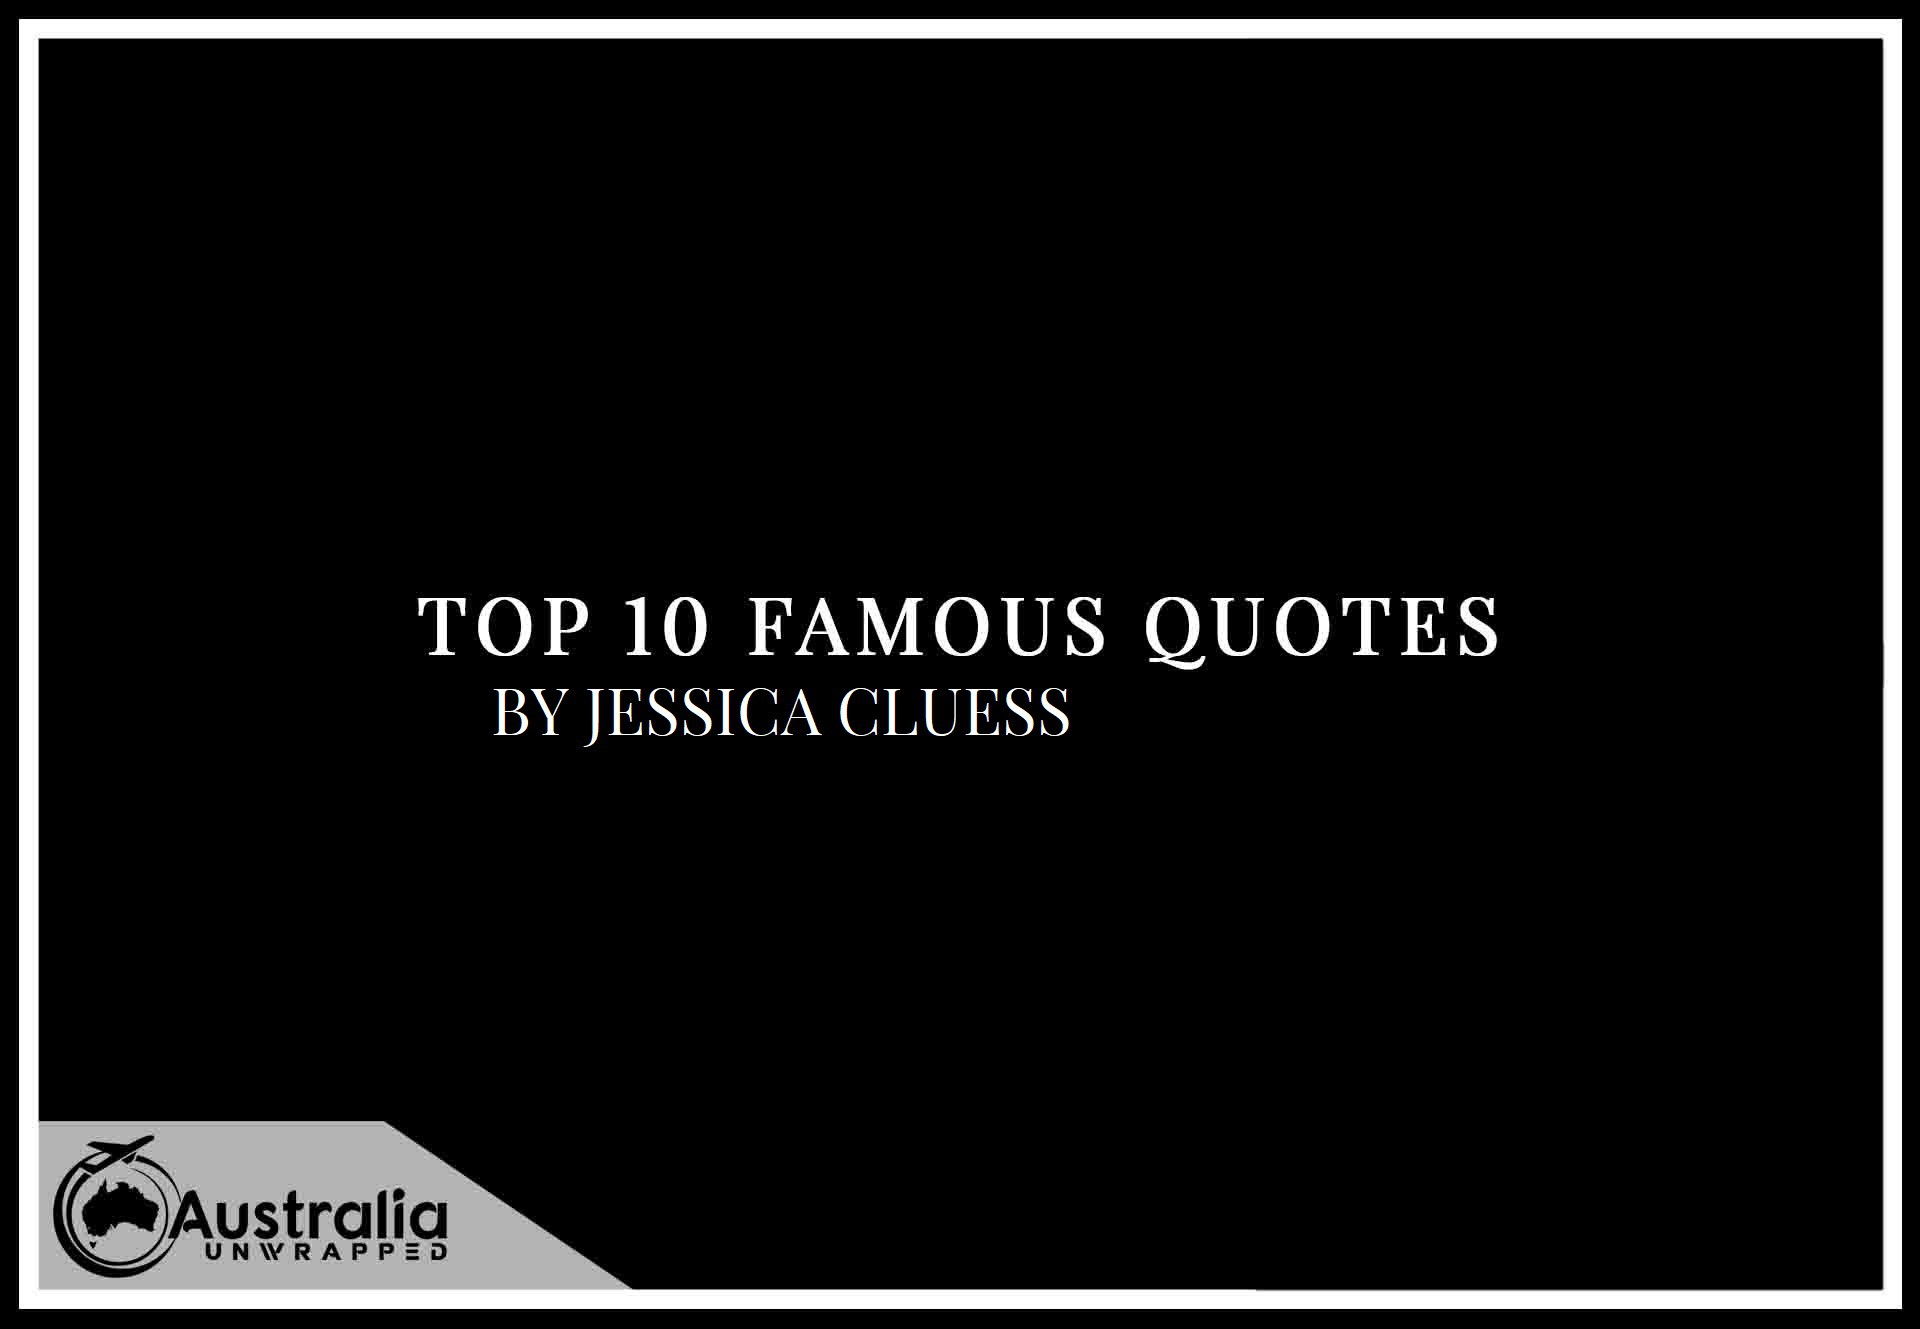 Top 10 Famous Quotes by Author Jessica Cluess